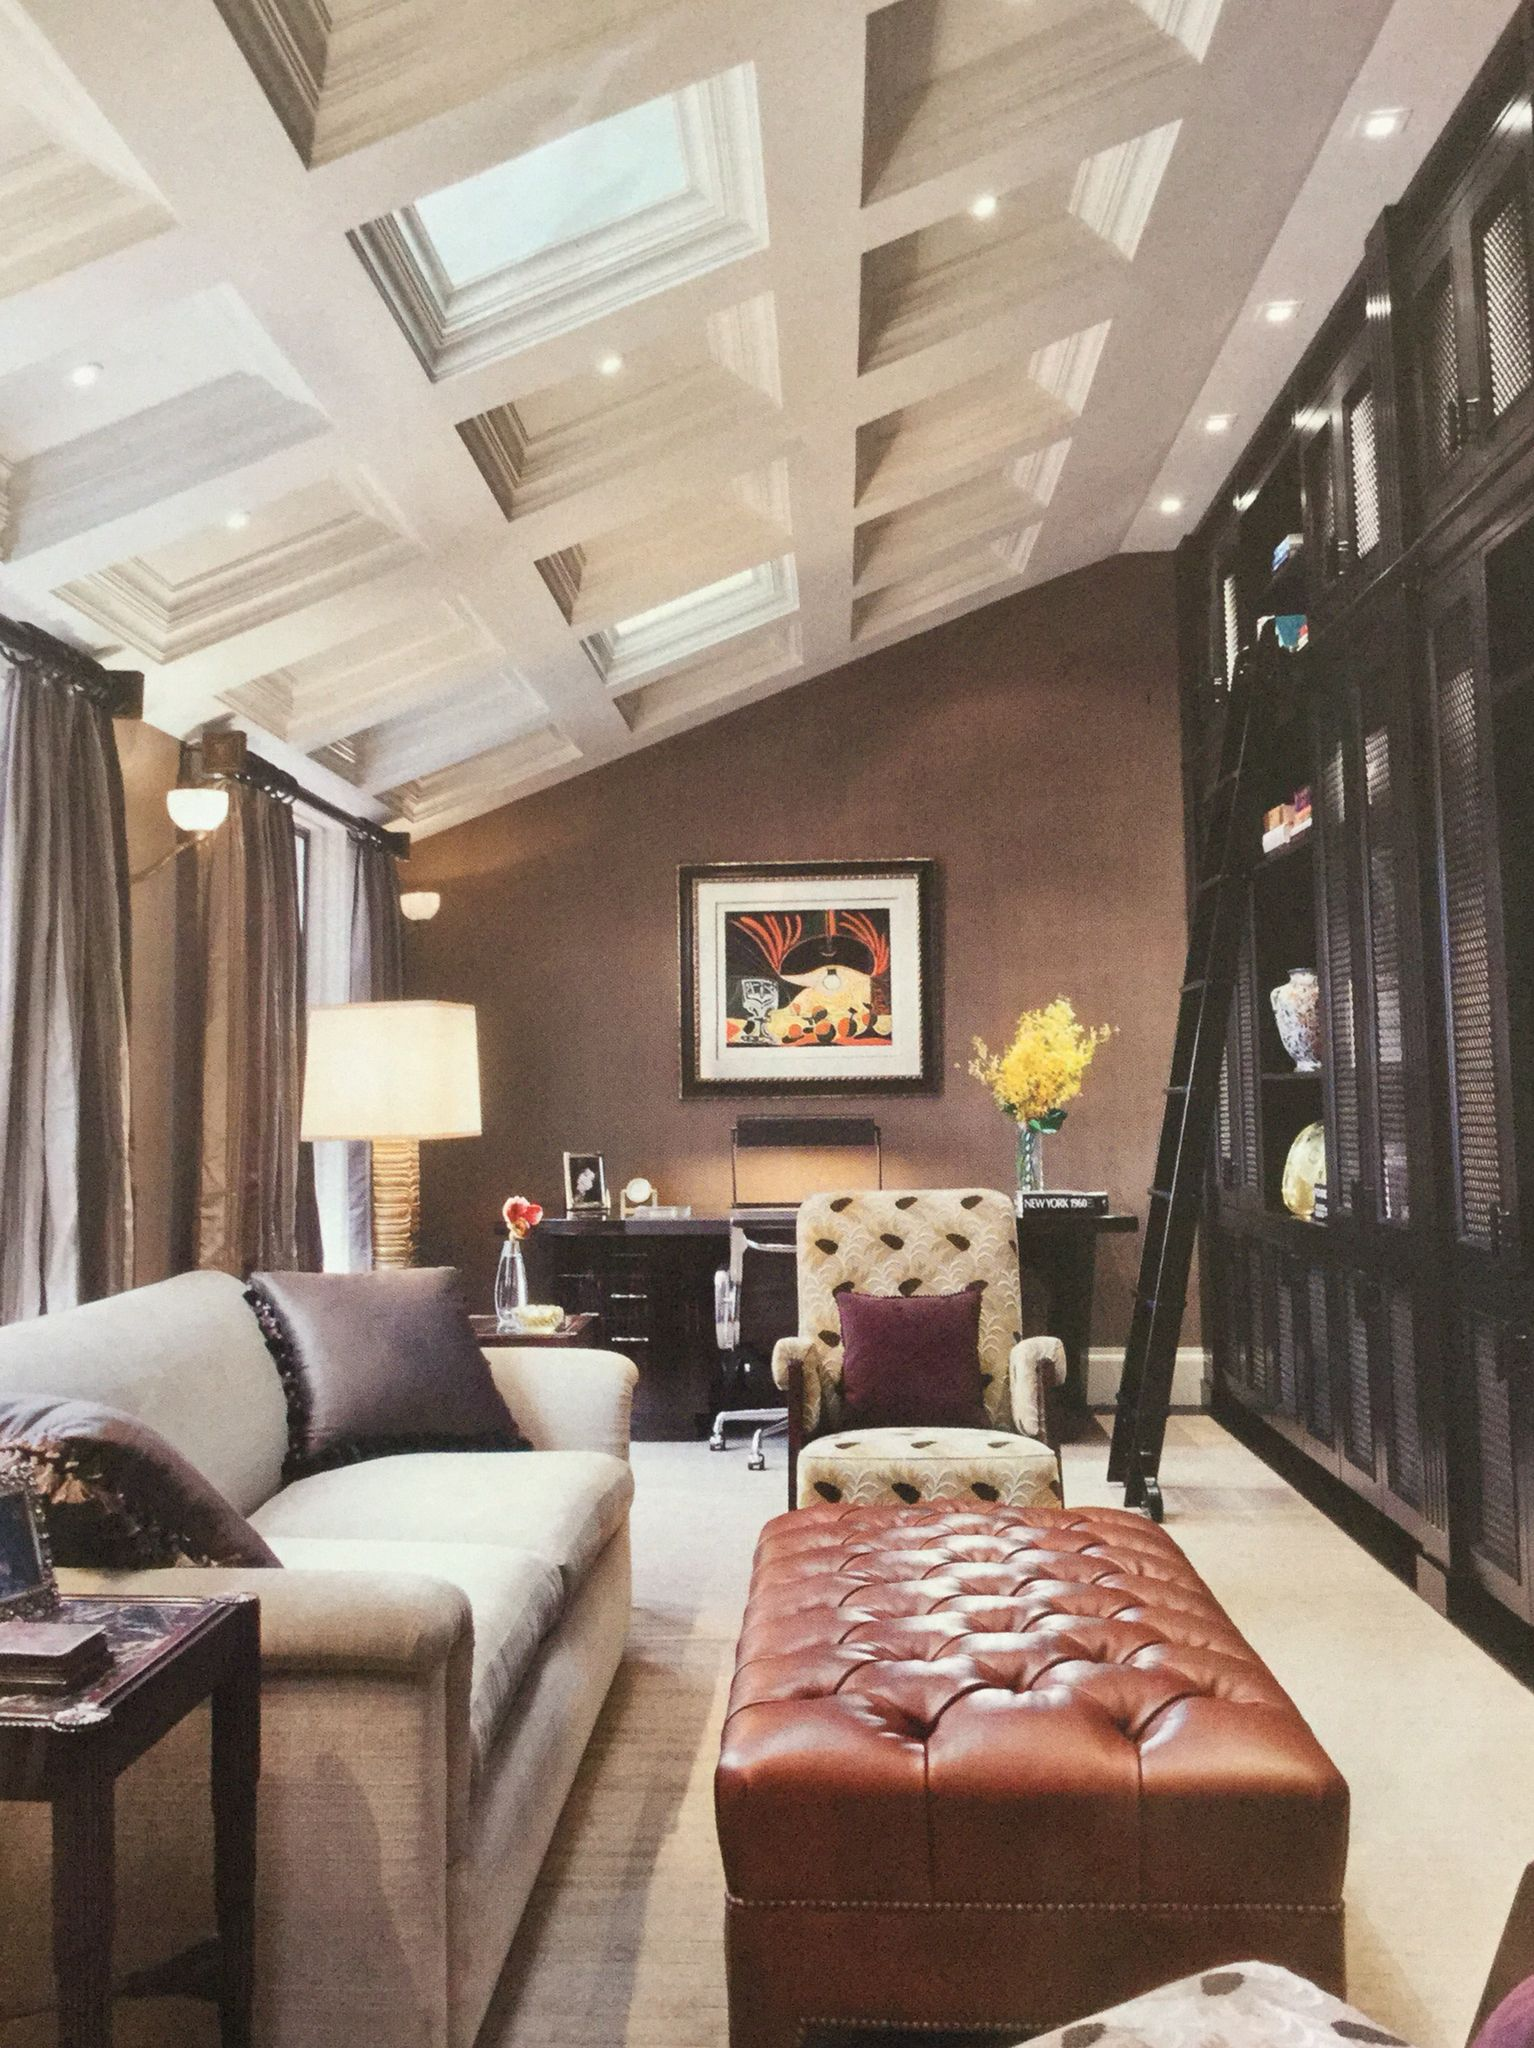 10 Stunning Sloped Ceiling Living Room